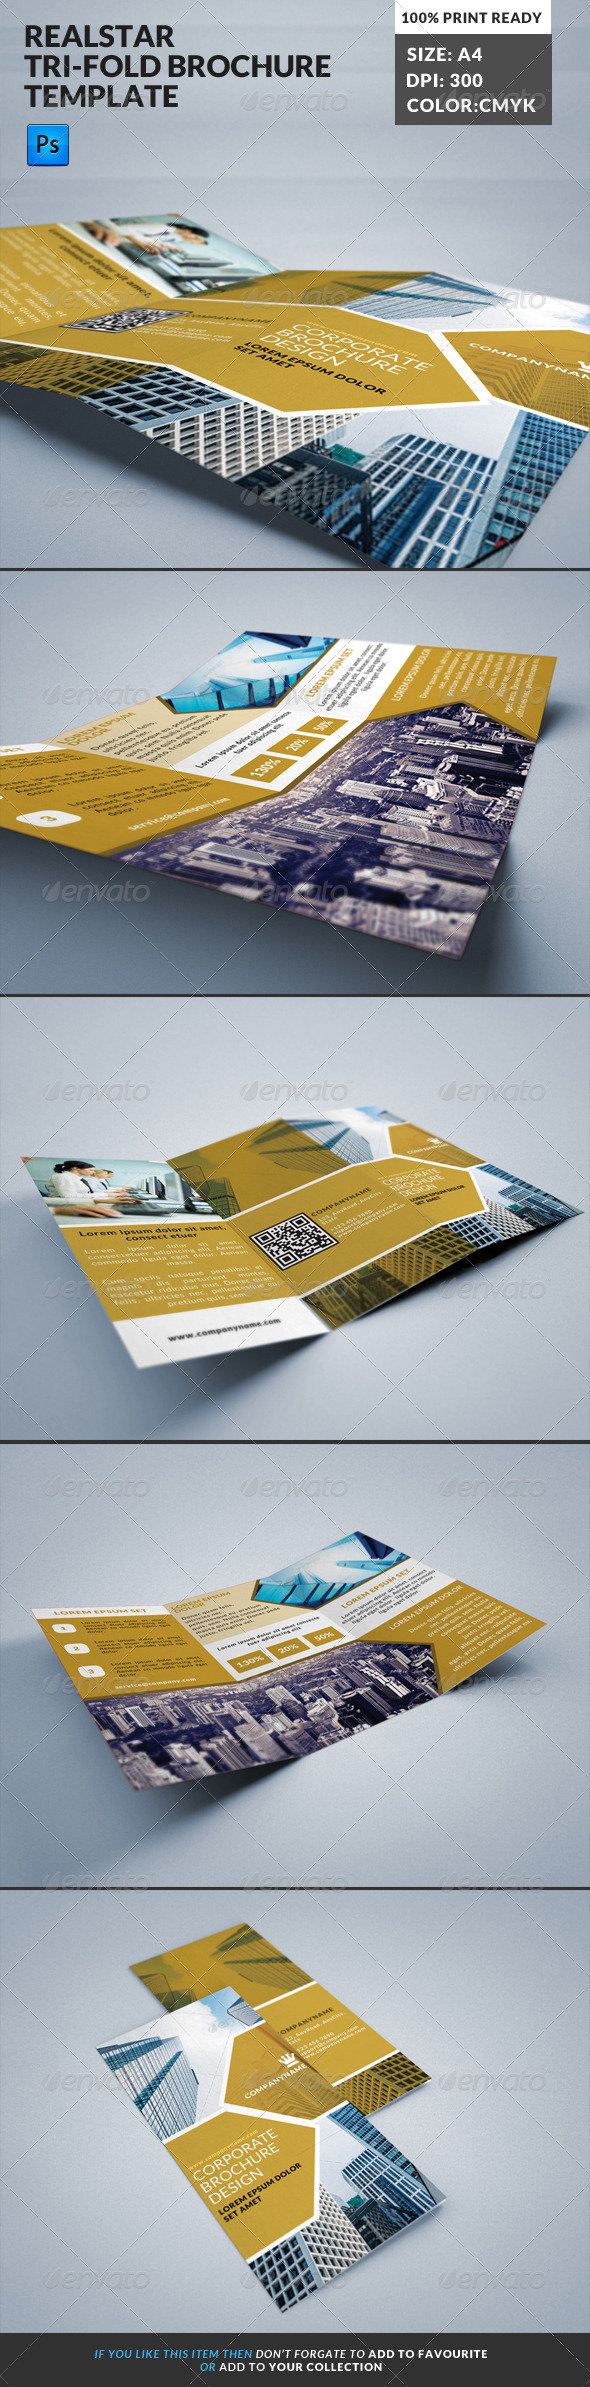 GraphicRiver Ralstar Real State Tri-fold Brochure Template 7886818